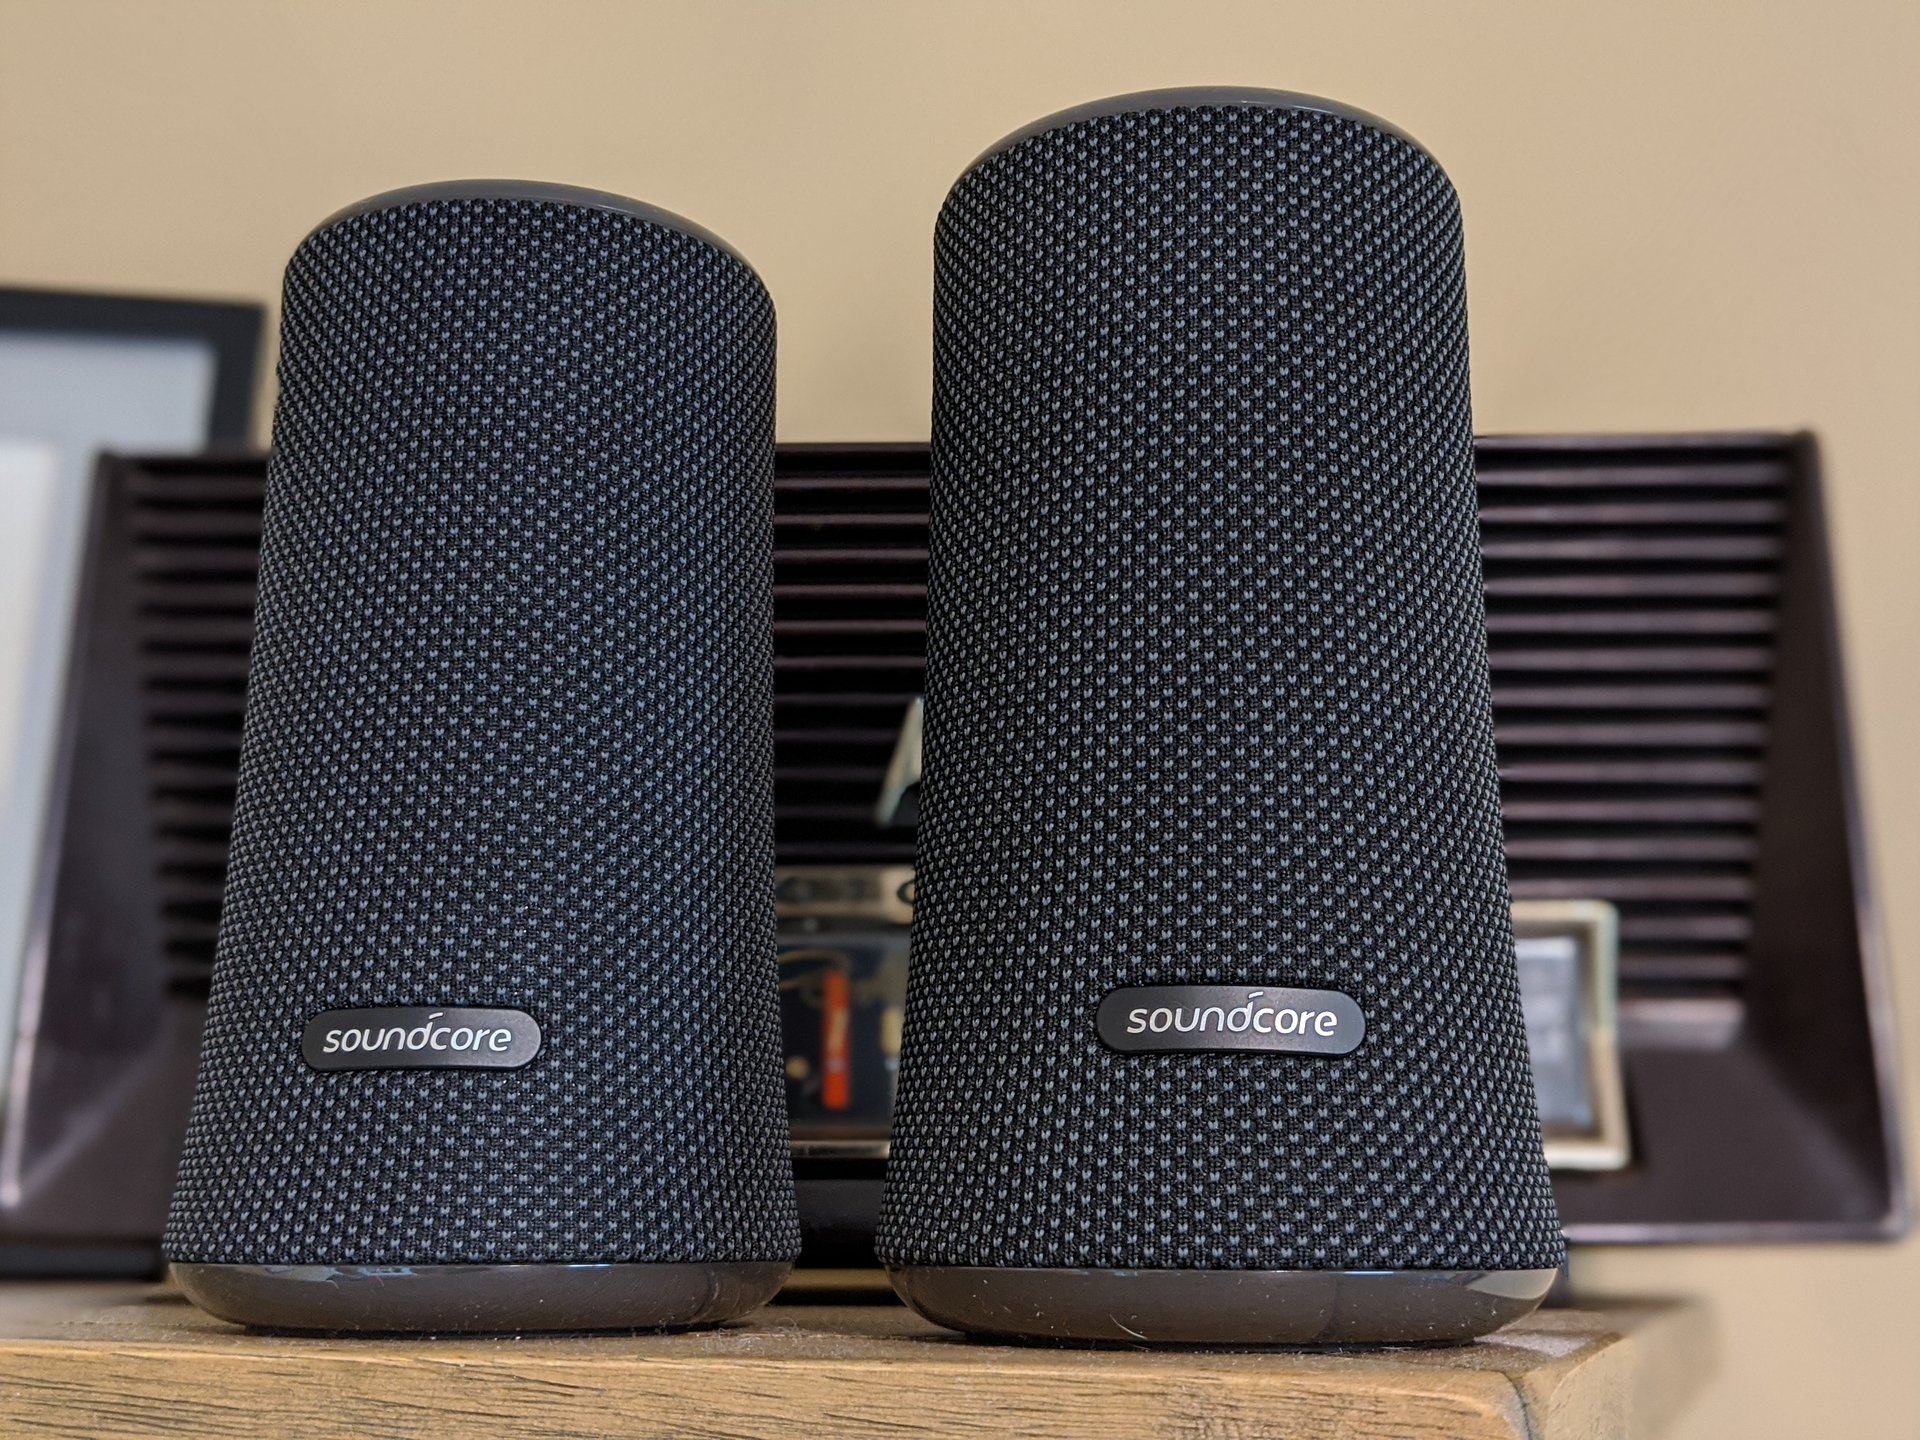 Bluetooth Speakers How To Find The Best One